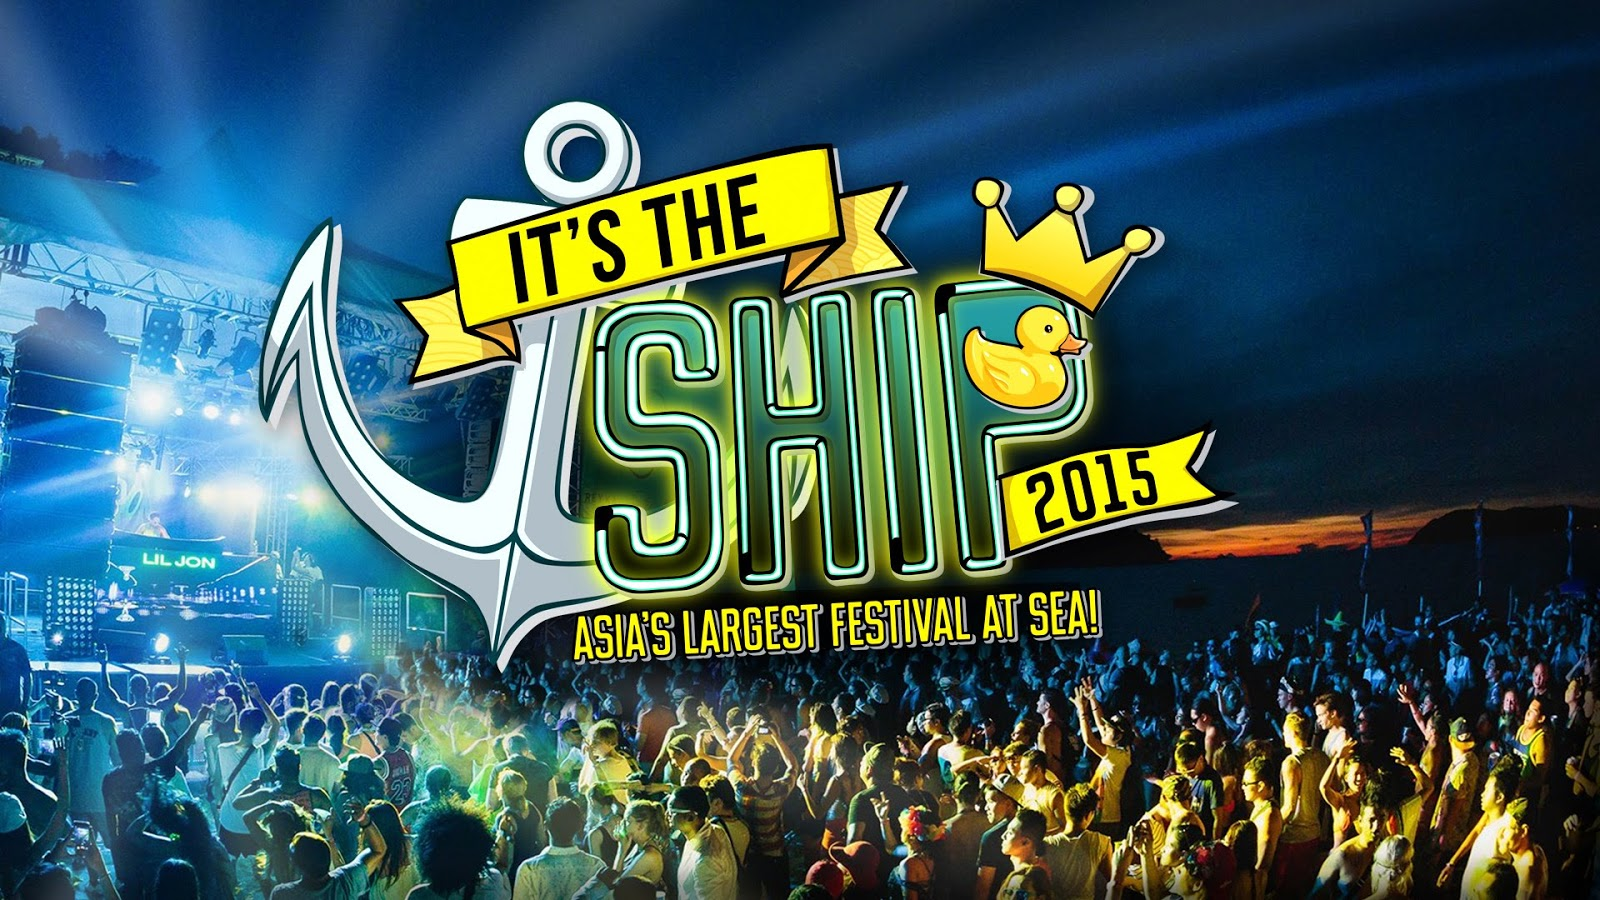 'It's the Ship' 2015 boasts big names in final lineup